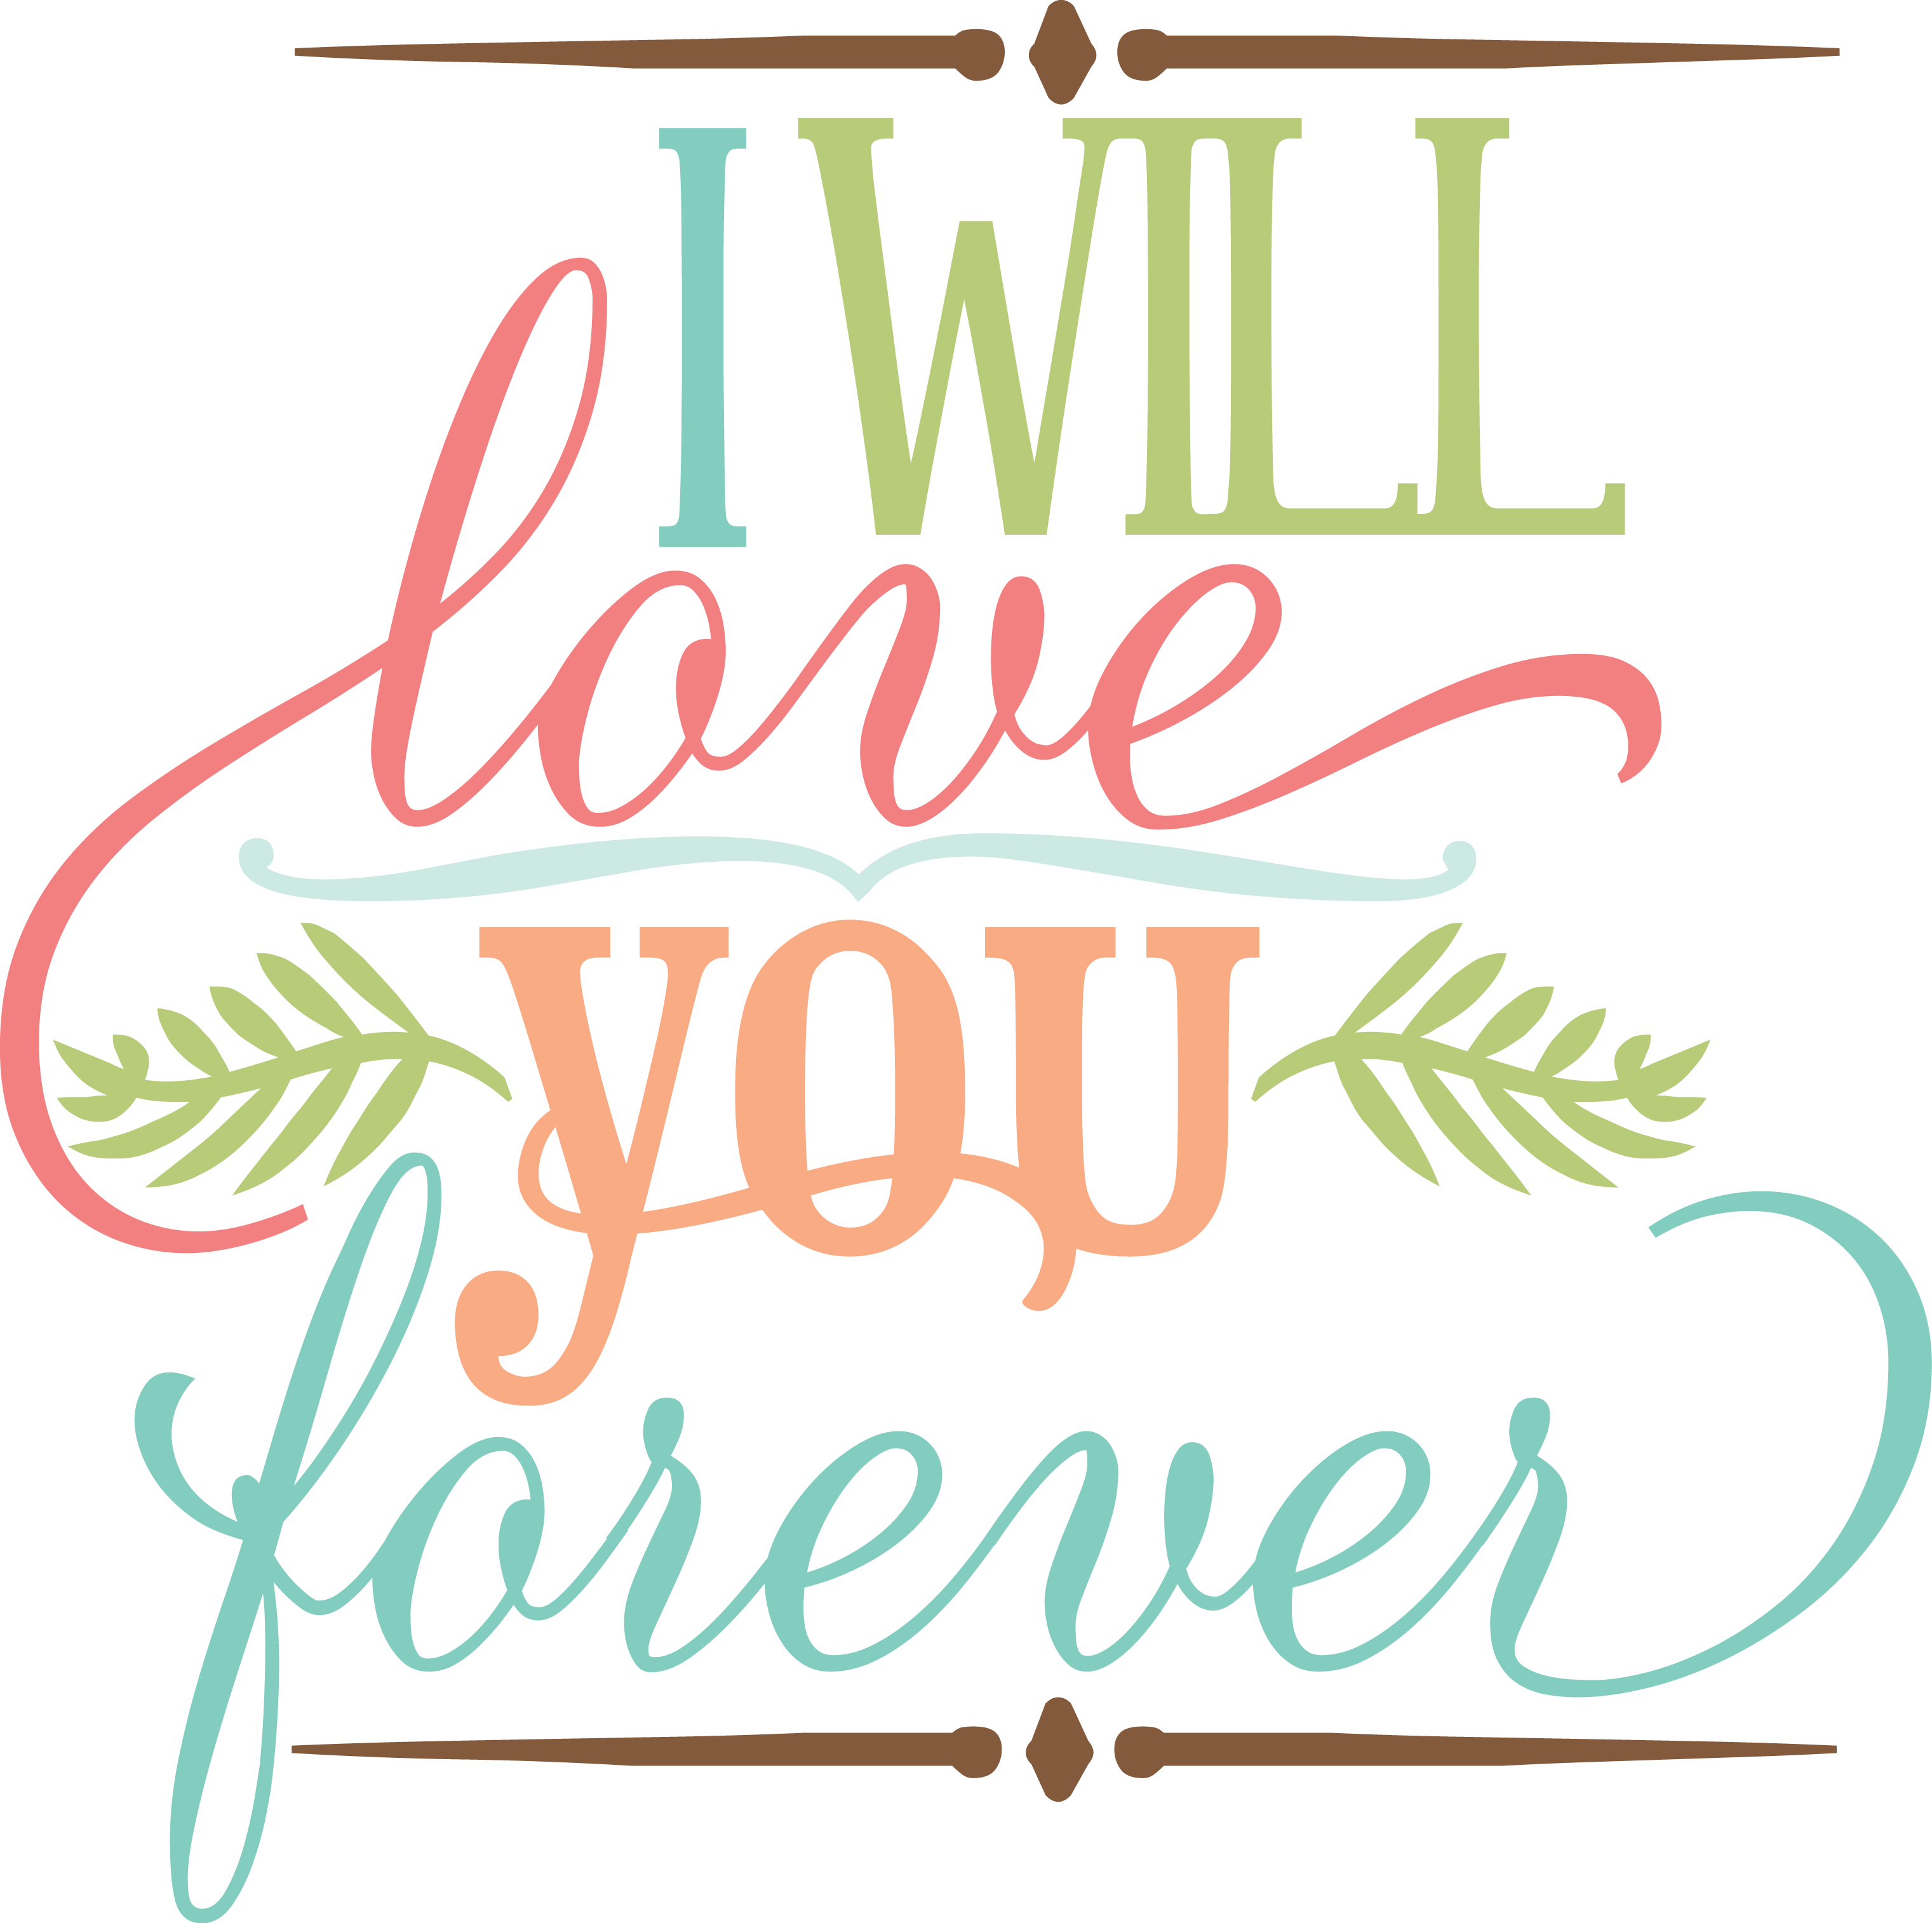 Download MKC_I Will Love You Forever SVG | Free love quotes, Love ...